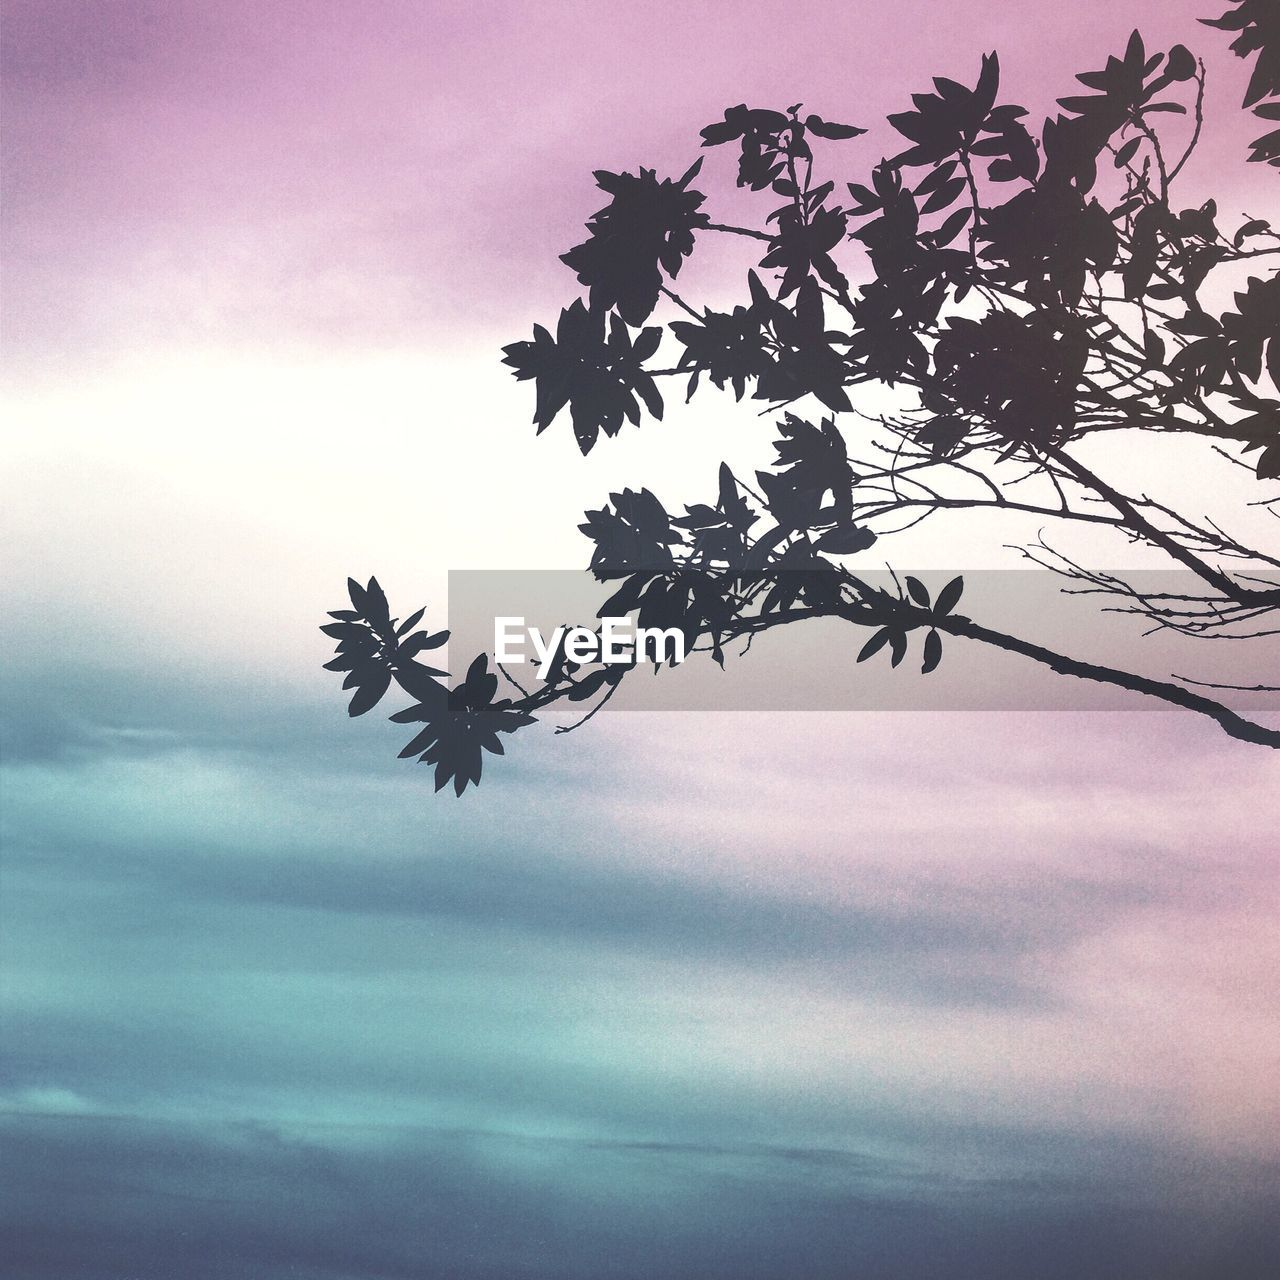 sky, plant, cloud - sky, nature, tree, beauty in nature, no people, silhouette, low angle view, tranquility, leaf, growth, plant part, branch, outdoors, day, scenics - nature, sunset, tranquil scene, dusk